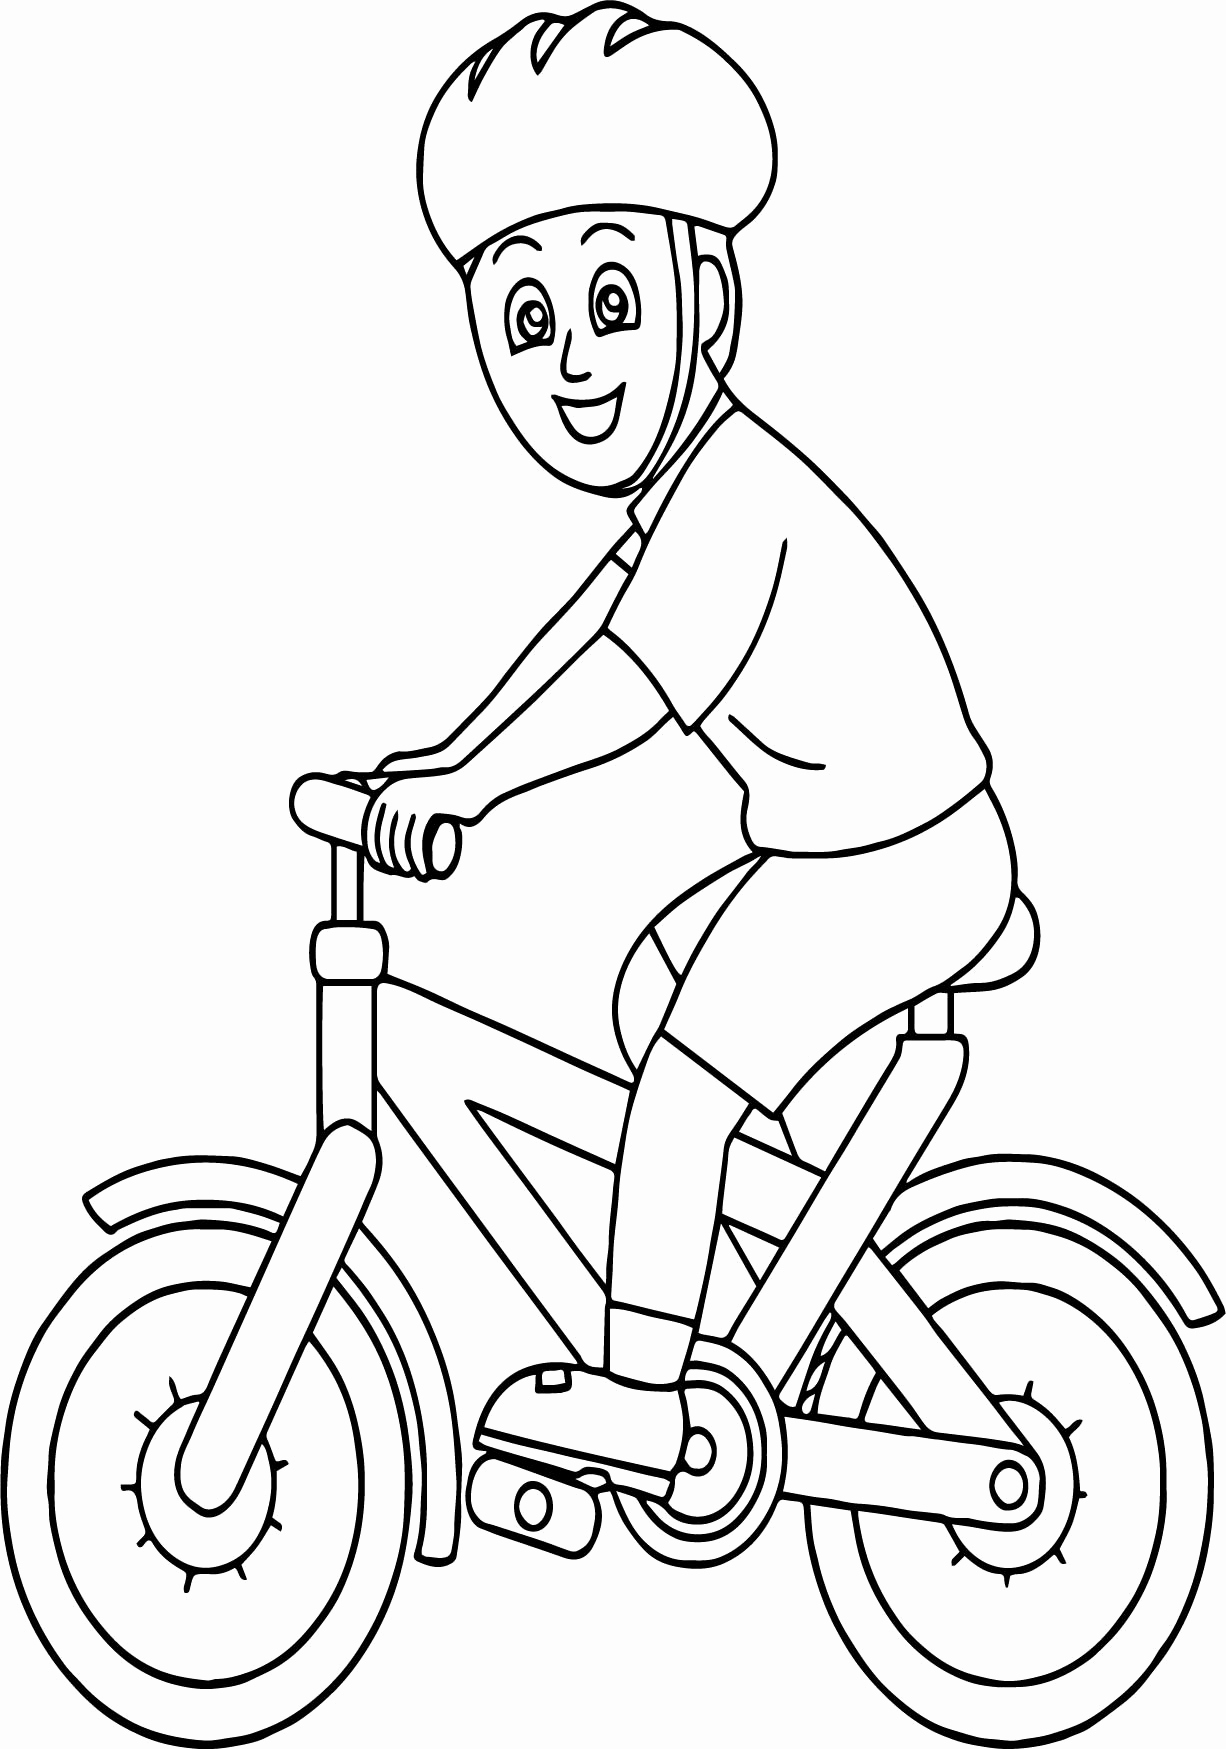 1226x1749 Best Of Bike Coloring Pages Best Of Bicycle Helmet Coloring Pages